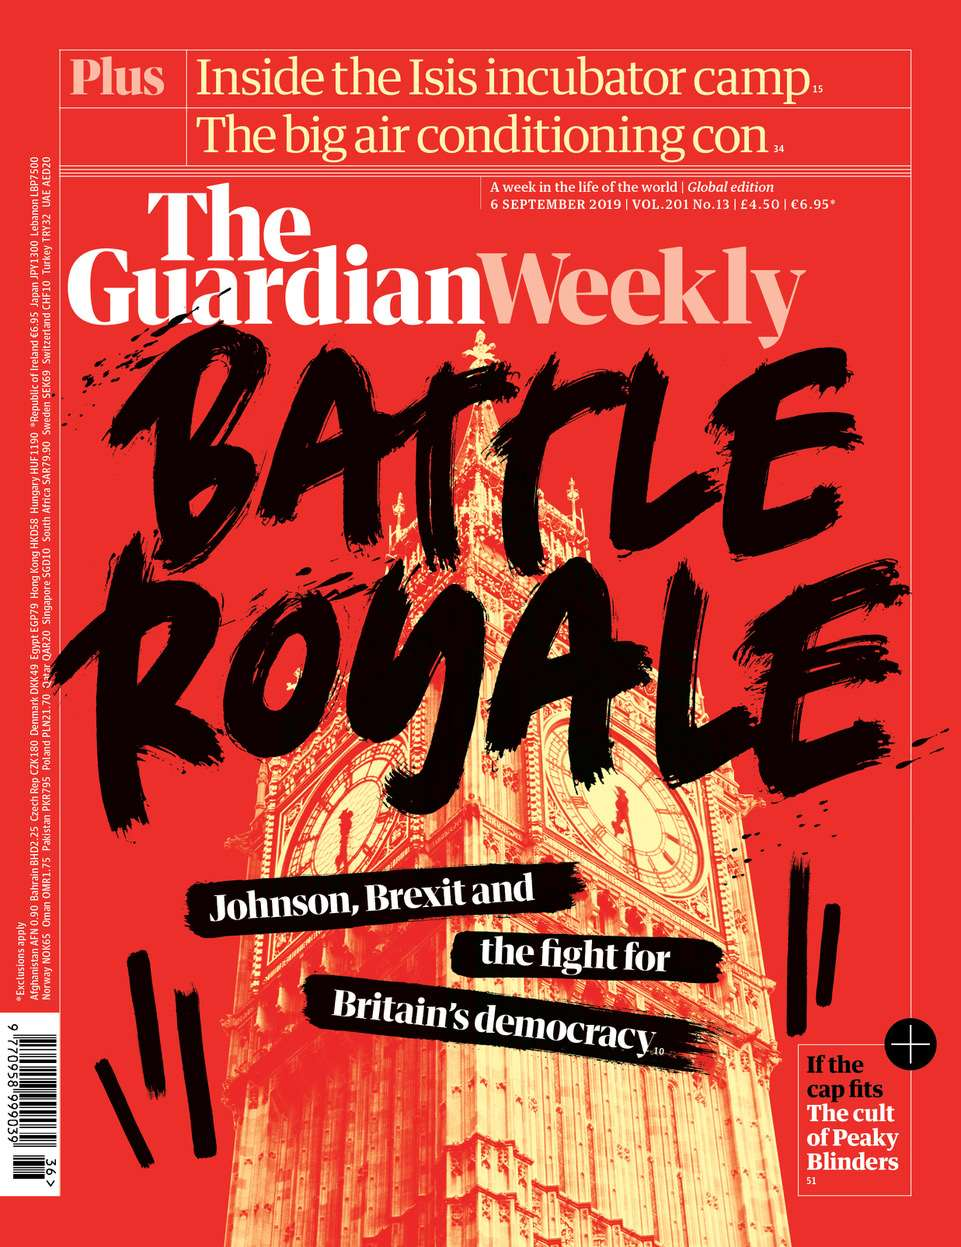 Ulla Puggaard, Cover the The Guardian Weekly, hand rendered typography, graphic illustration style.